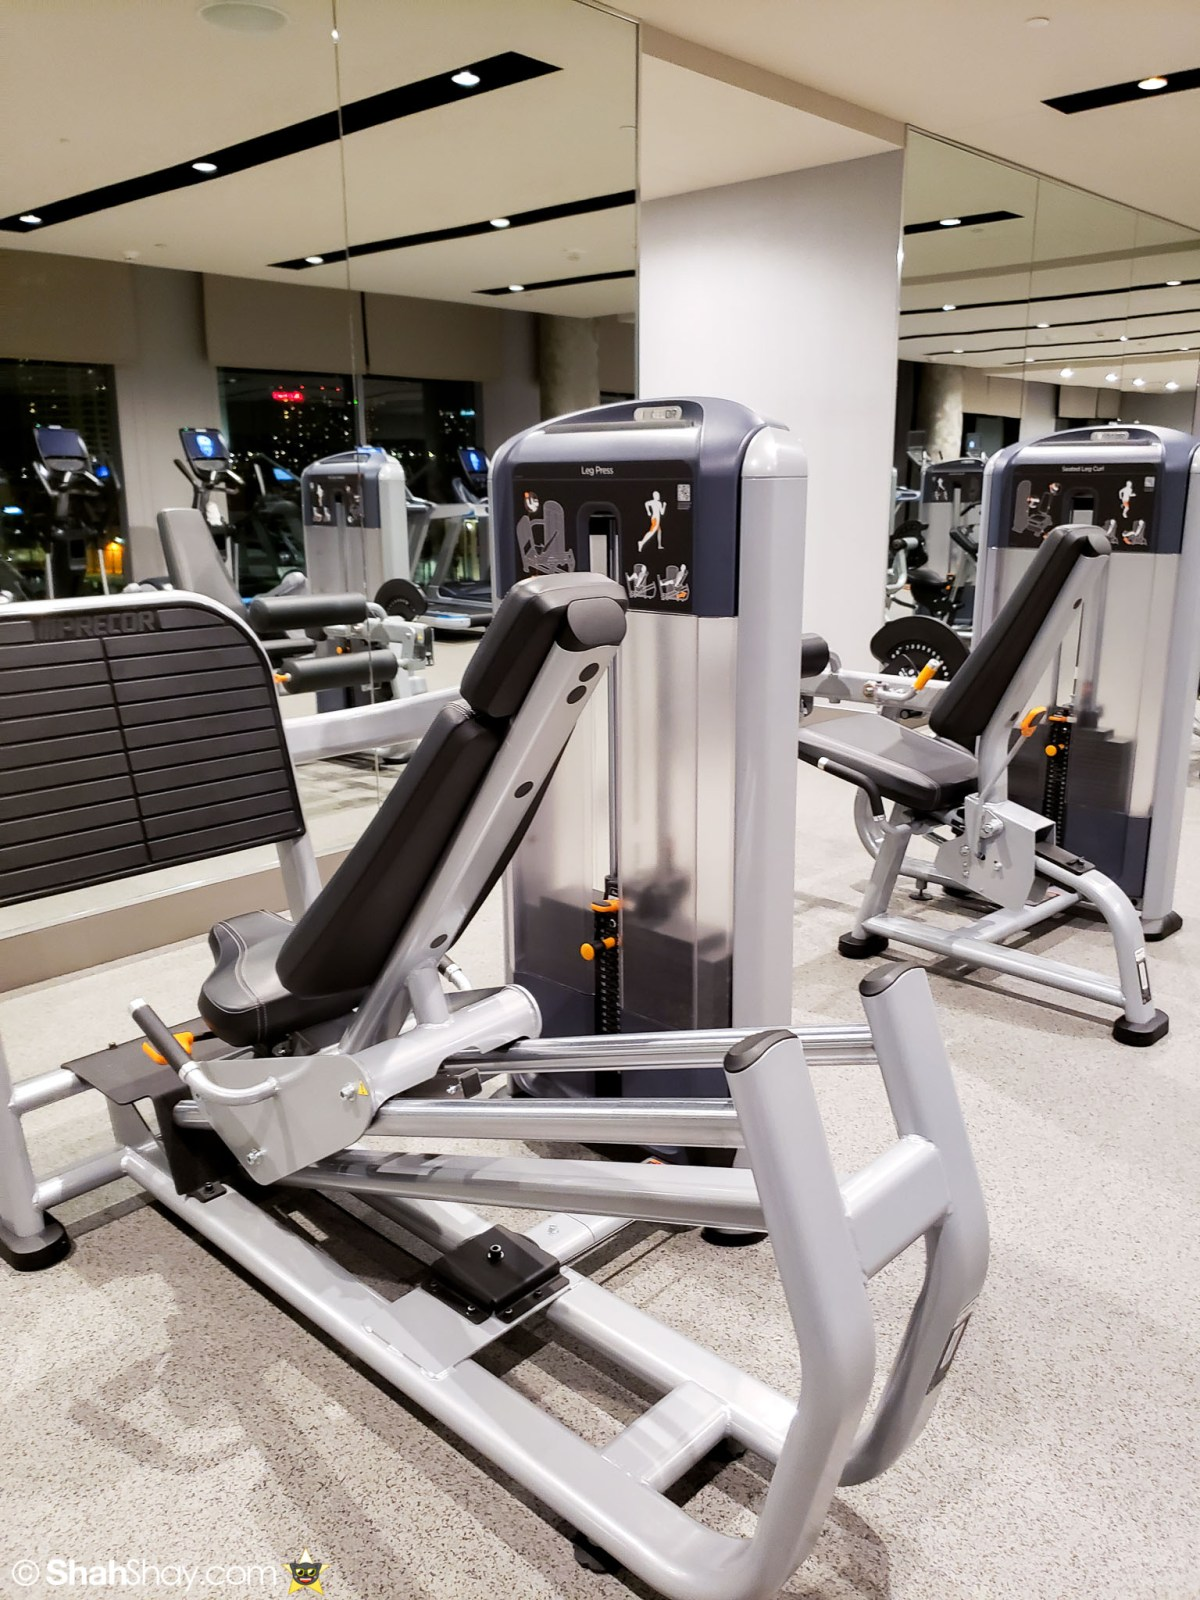 InterContinental San Diego Fitness Center - Lots of machines